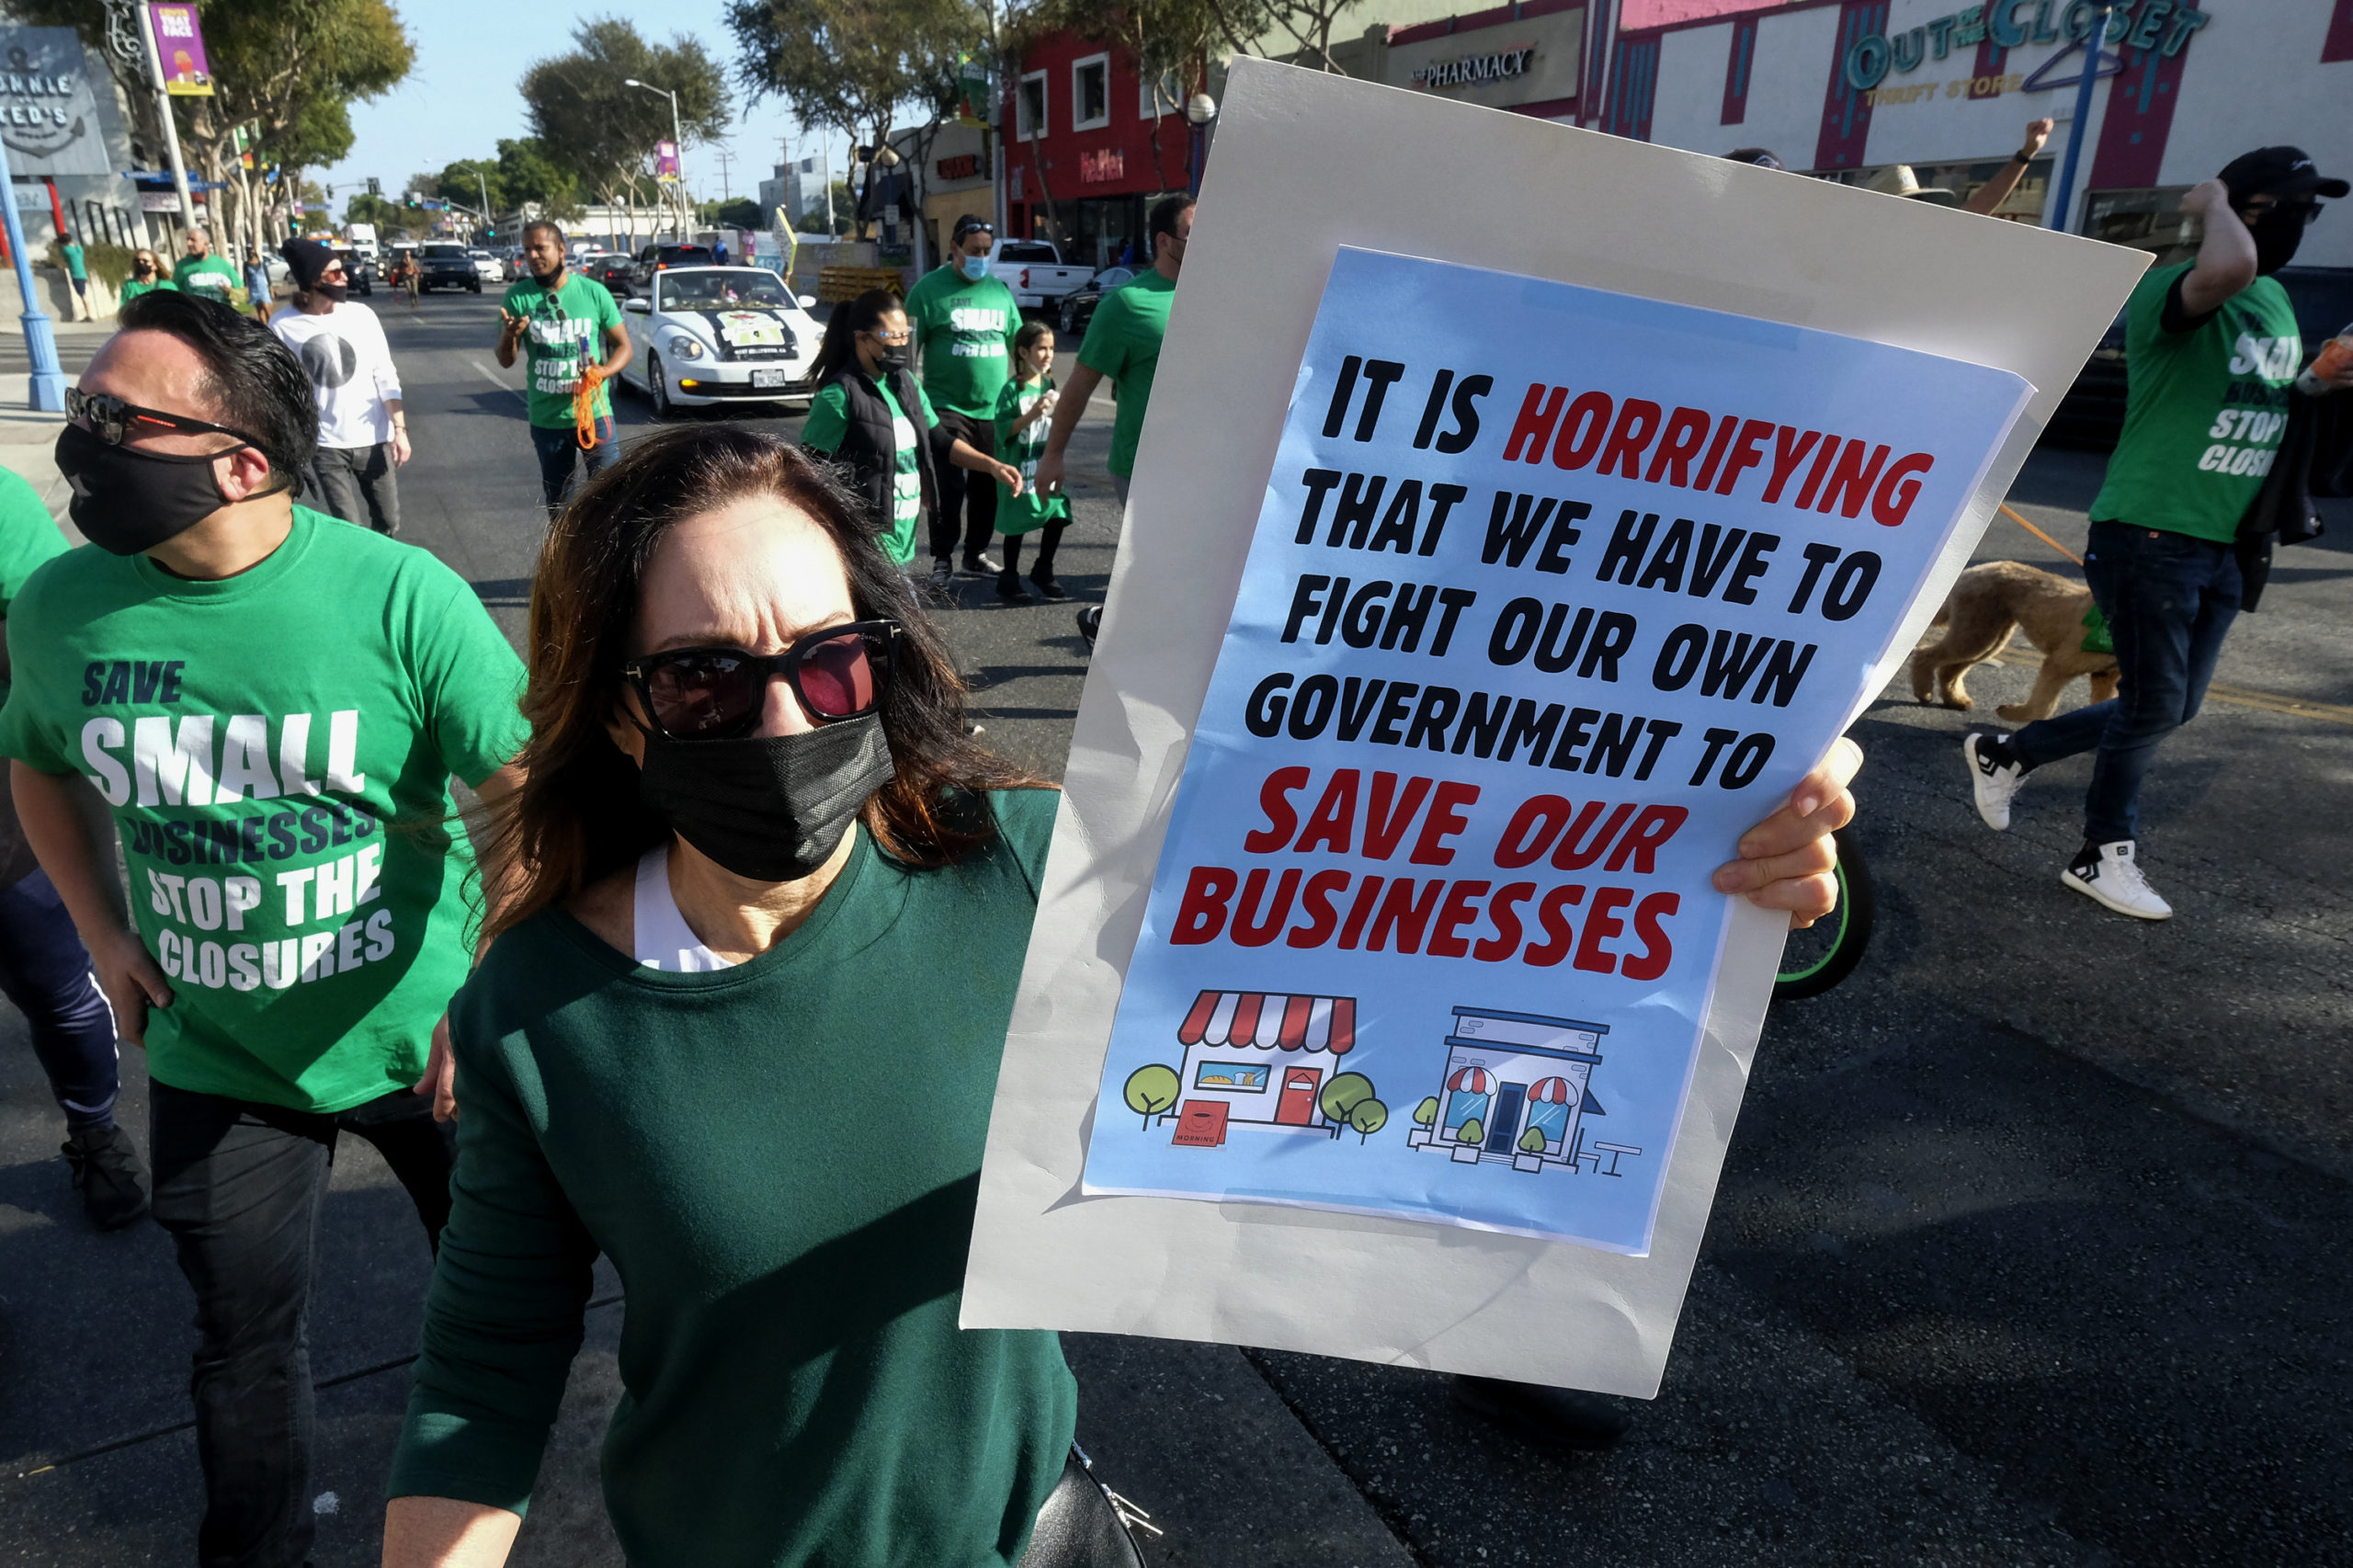 Members of small business owners take part in a 'Save Small Business' protest in Los Angeles, California on Dec. 12. (Ringo Chiu/AFP via Getty Images)